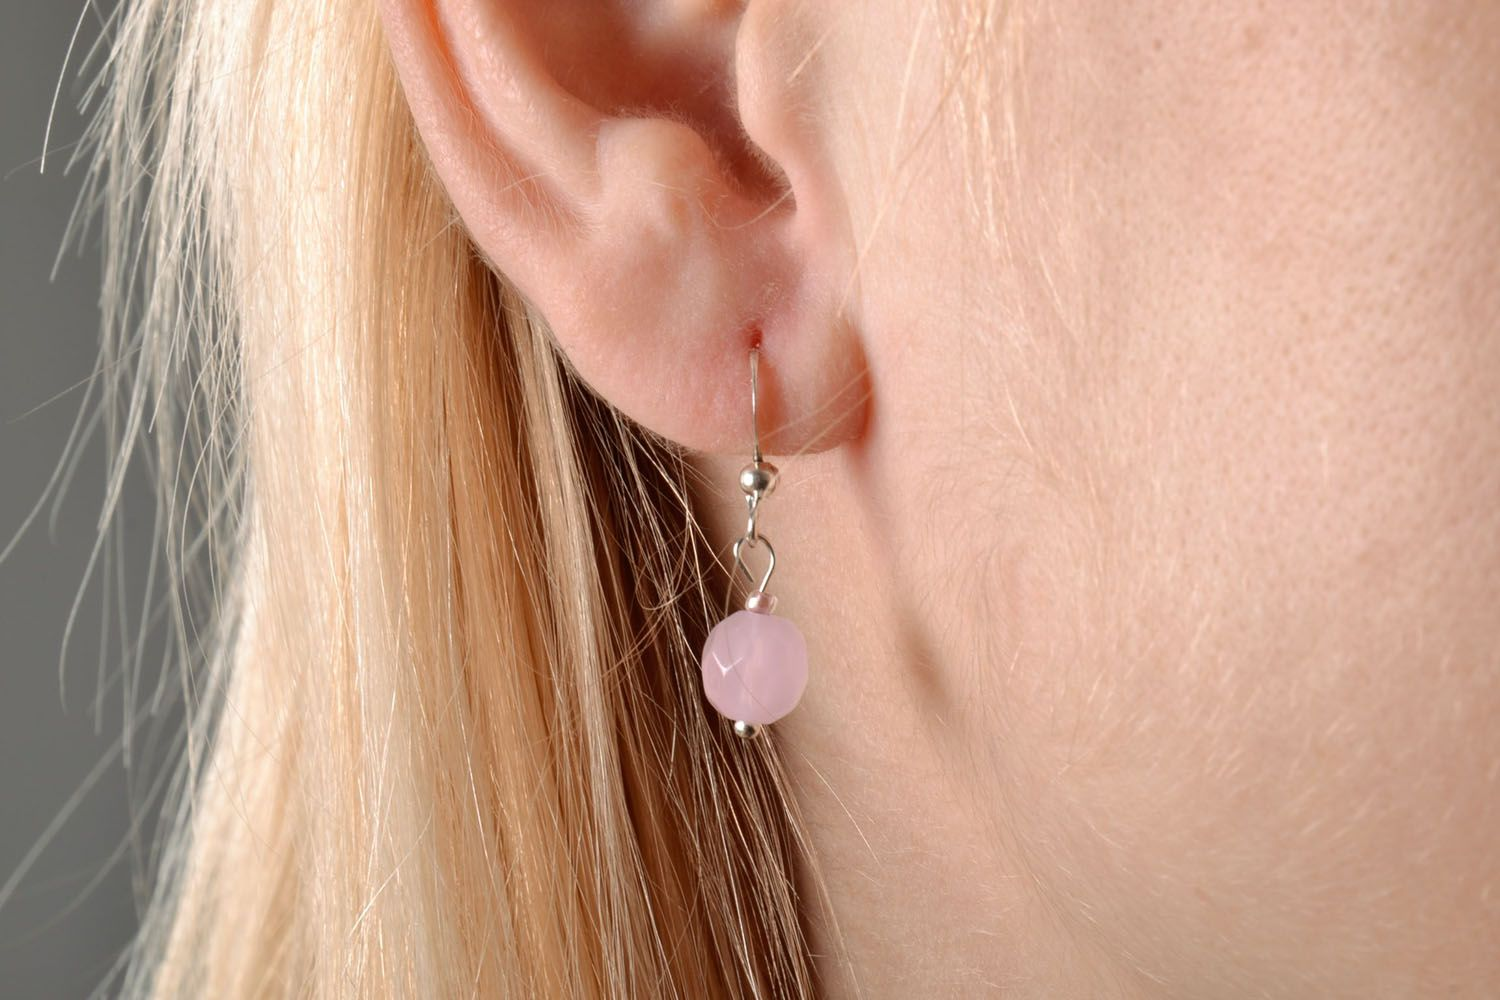 Neat earrings with charms photo 5